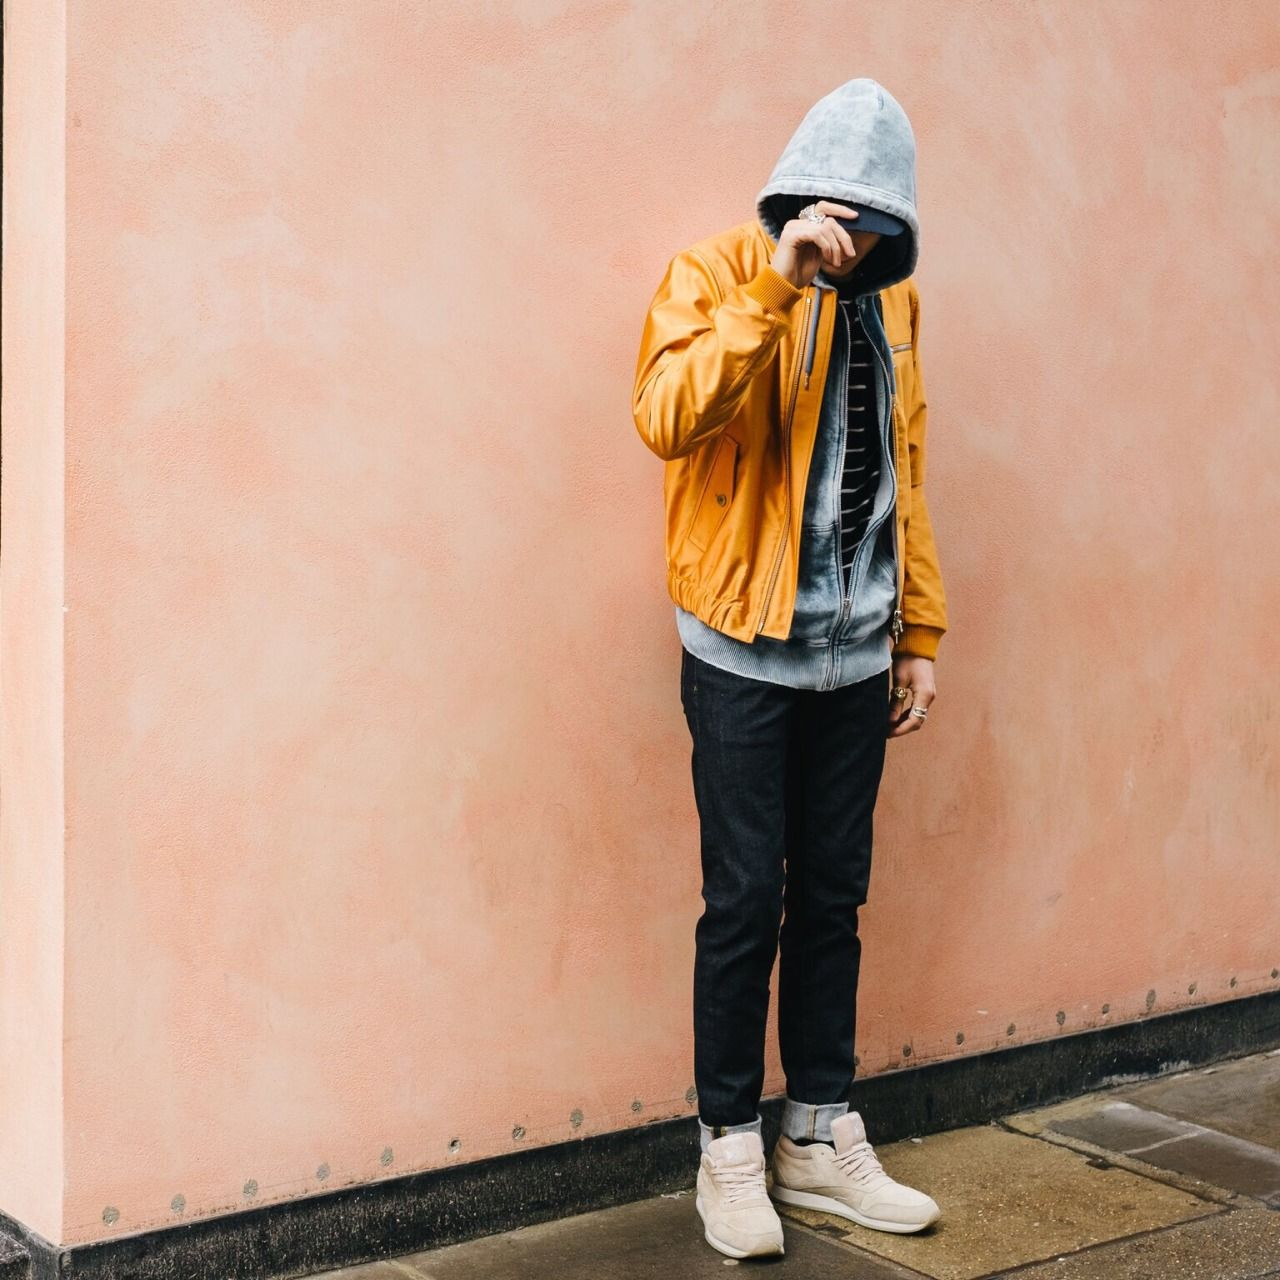 Menswear street style look featuring perfect layering with the stripe tee from River Island underneath the grey Diesel hoodie which are both complimenting the yellow statement  jacket from Dries Van Noten incredibly well. Outfit finished off with AG jeans and a pair of Reebok Classics.